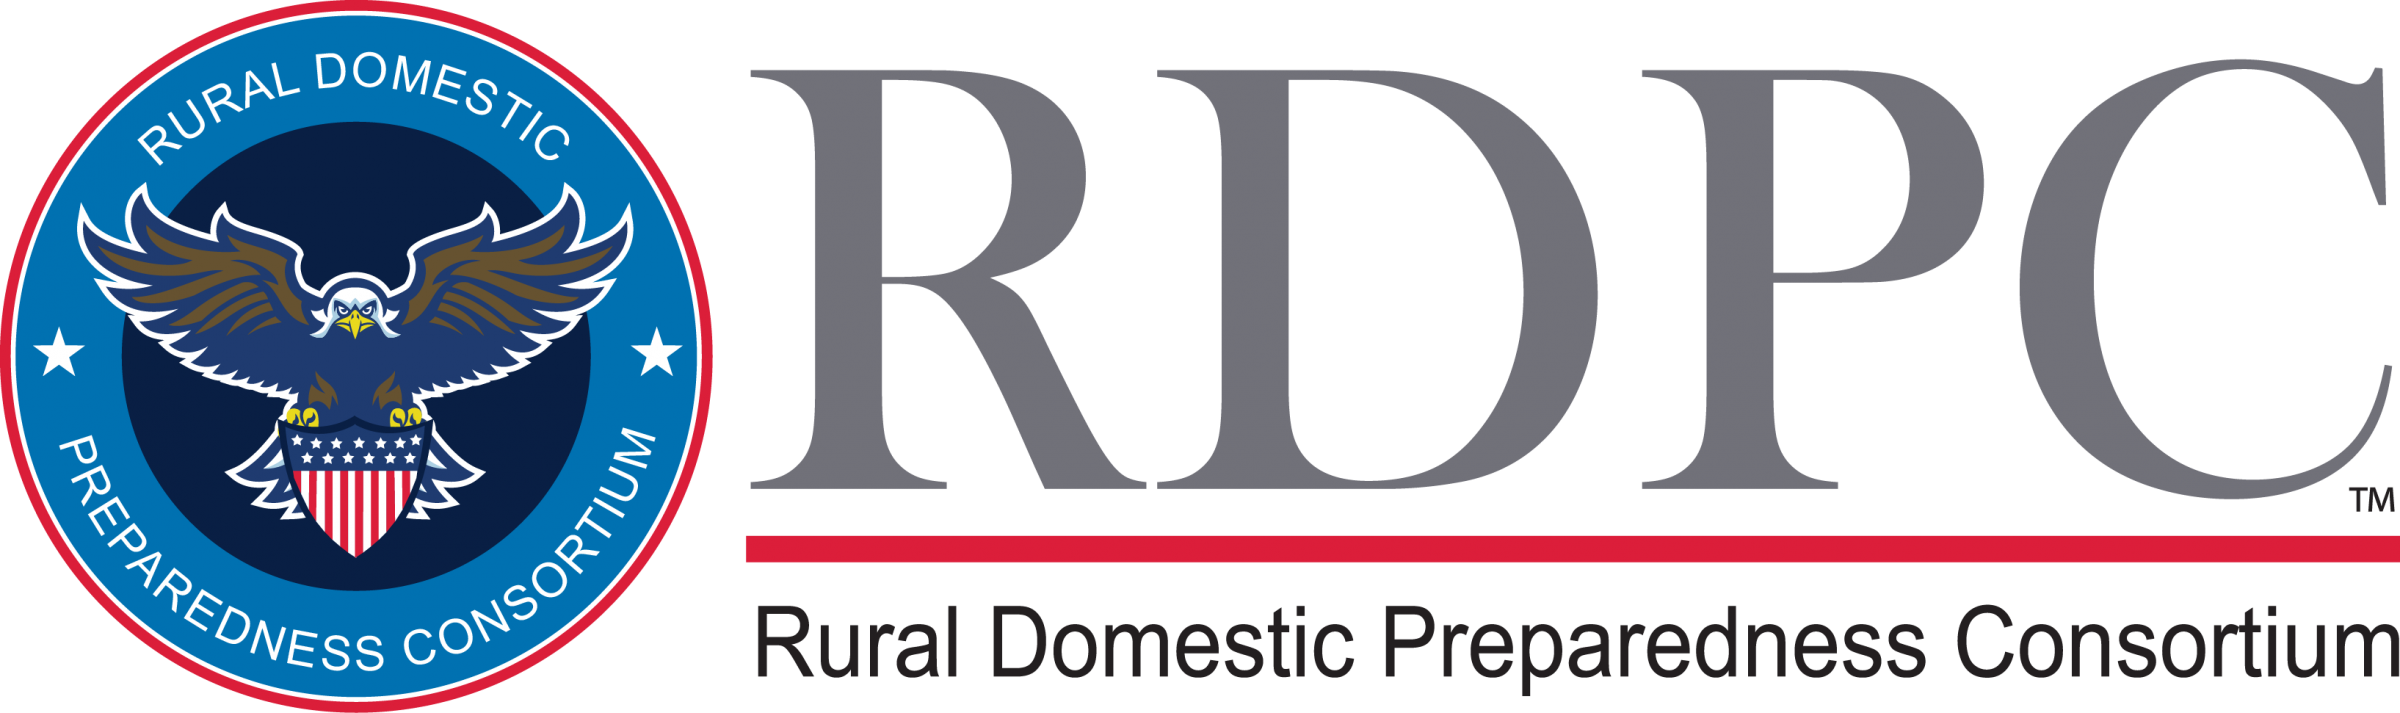 Logo of the Rural Domestic Preparedness Consortium